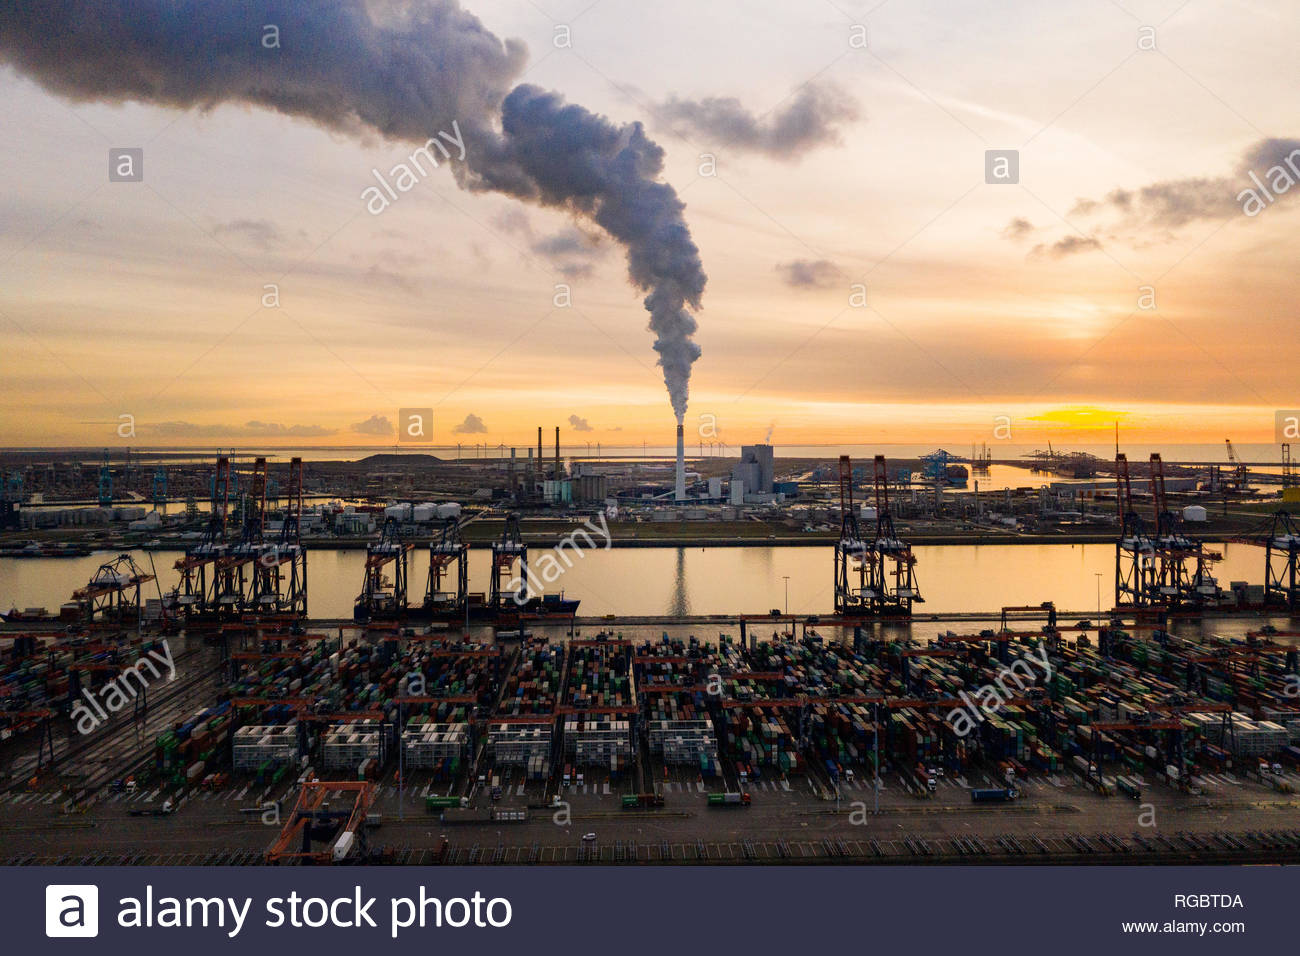 Coal power station on the Maasvlakte in Rotterdam, the Netherlands with in the foreground transfer area for sea containers - Stock Image